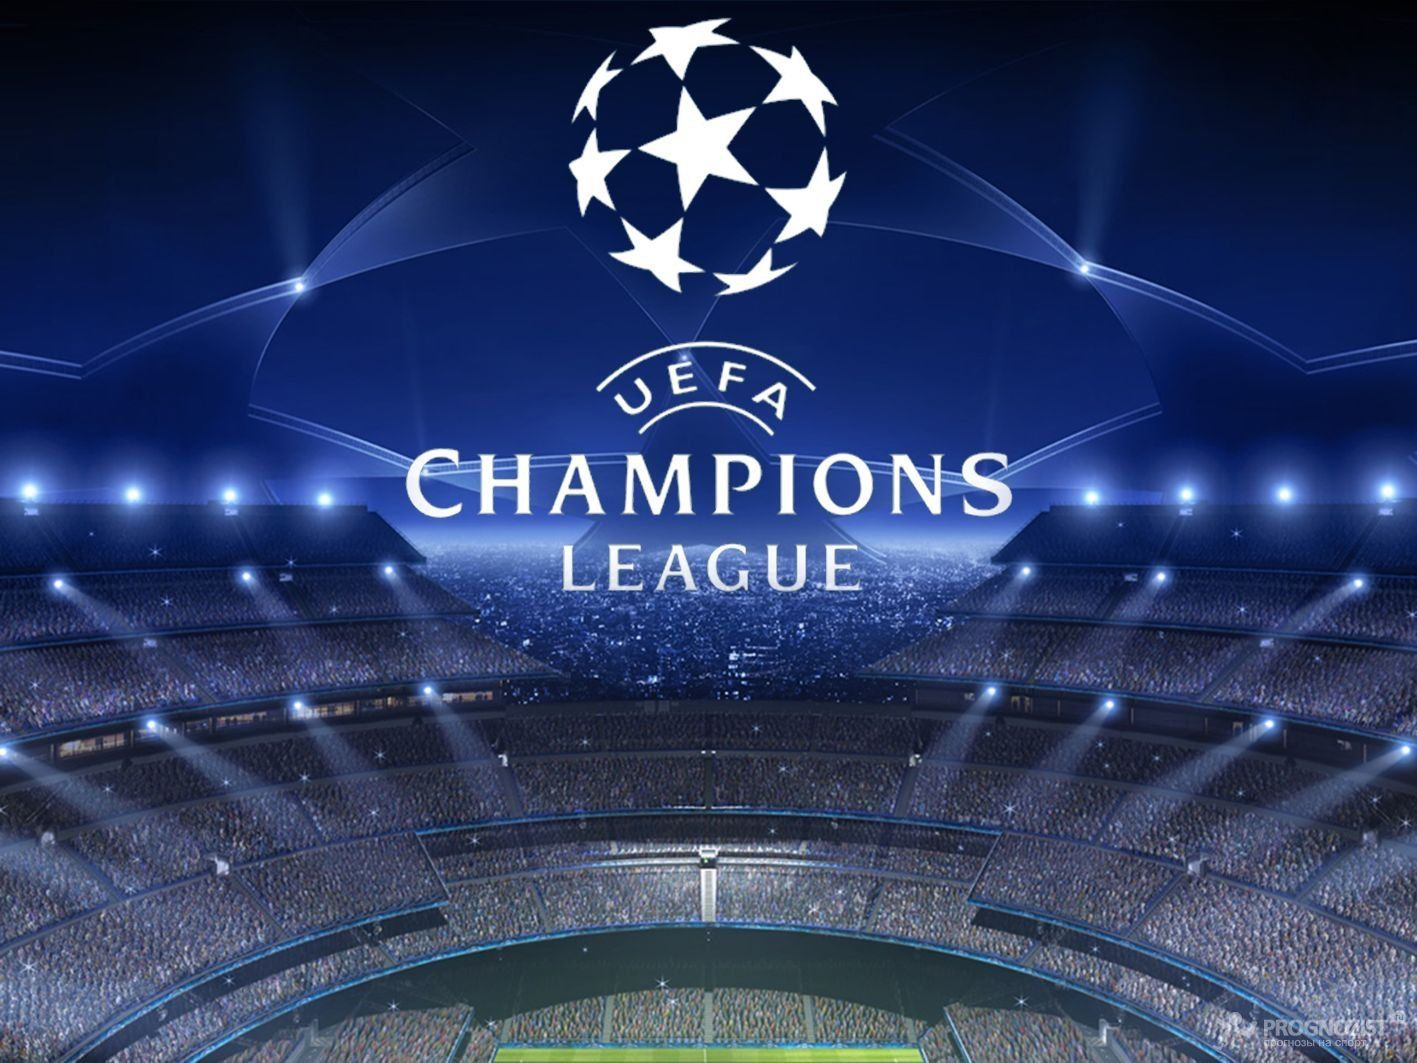 champions league wallpapers top free champions league backgrounds wallpaperaccess champions league wallpapers top free